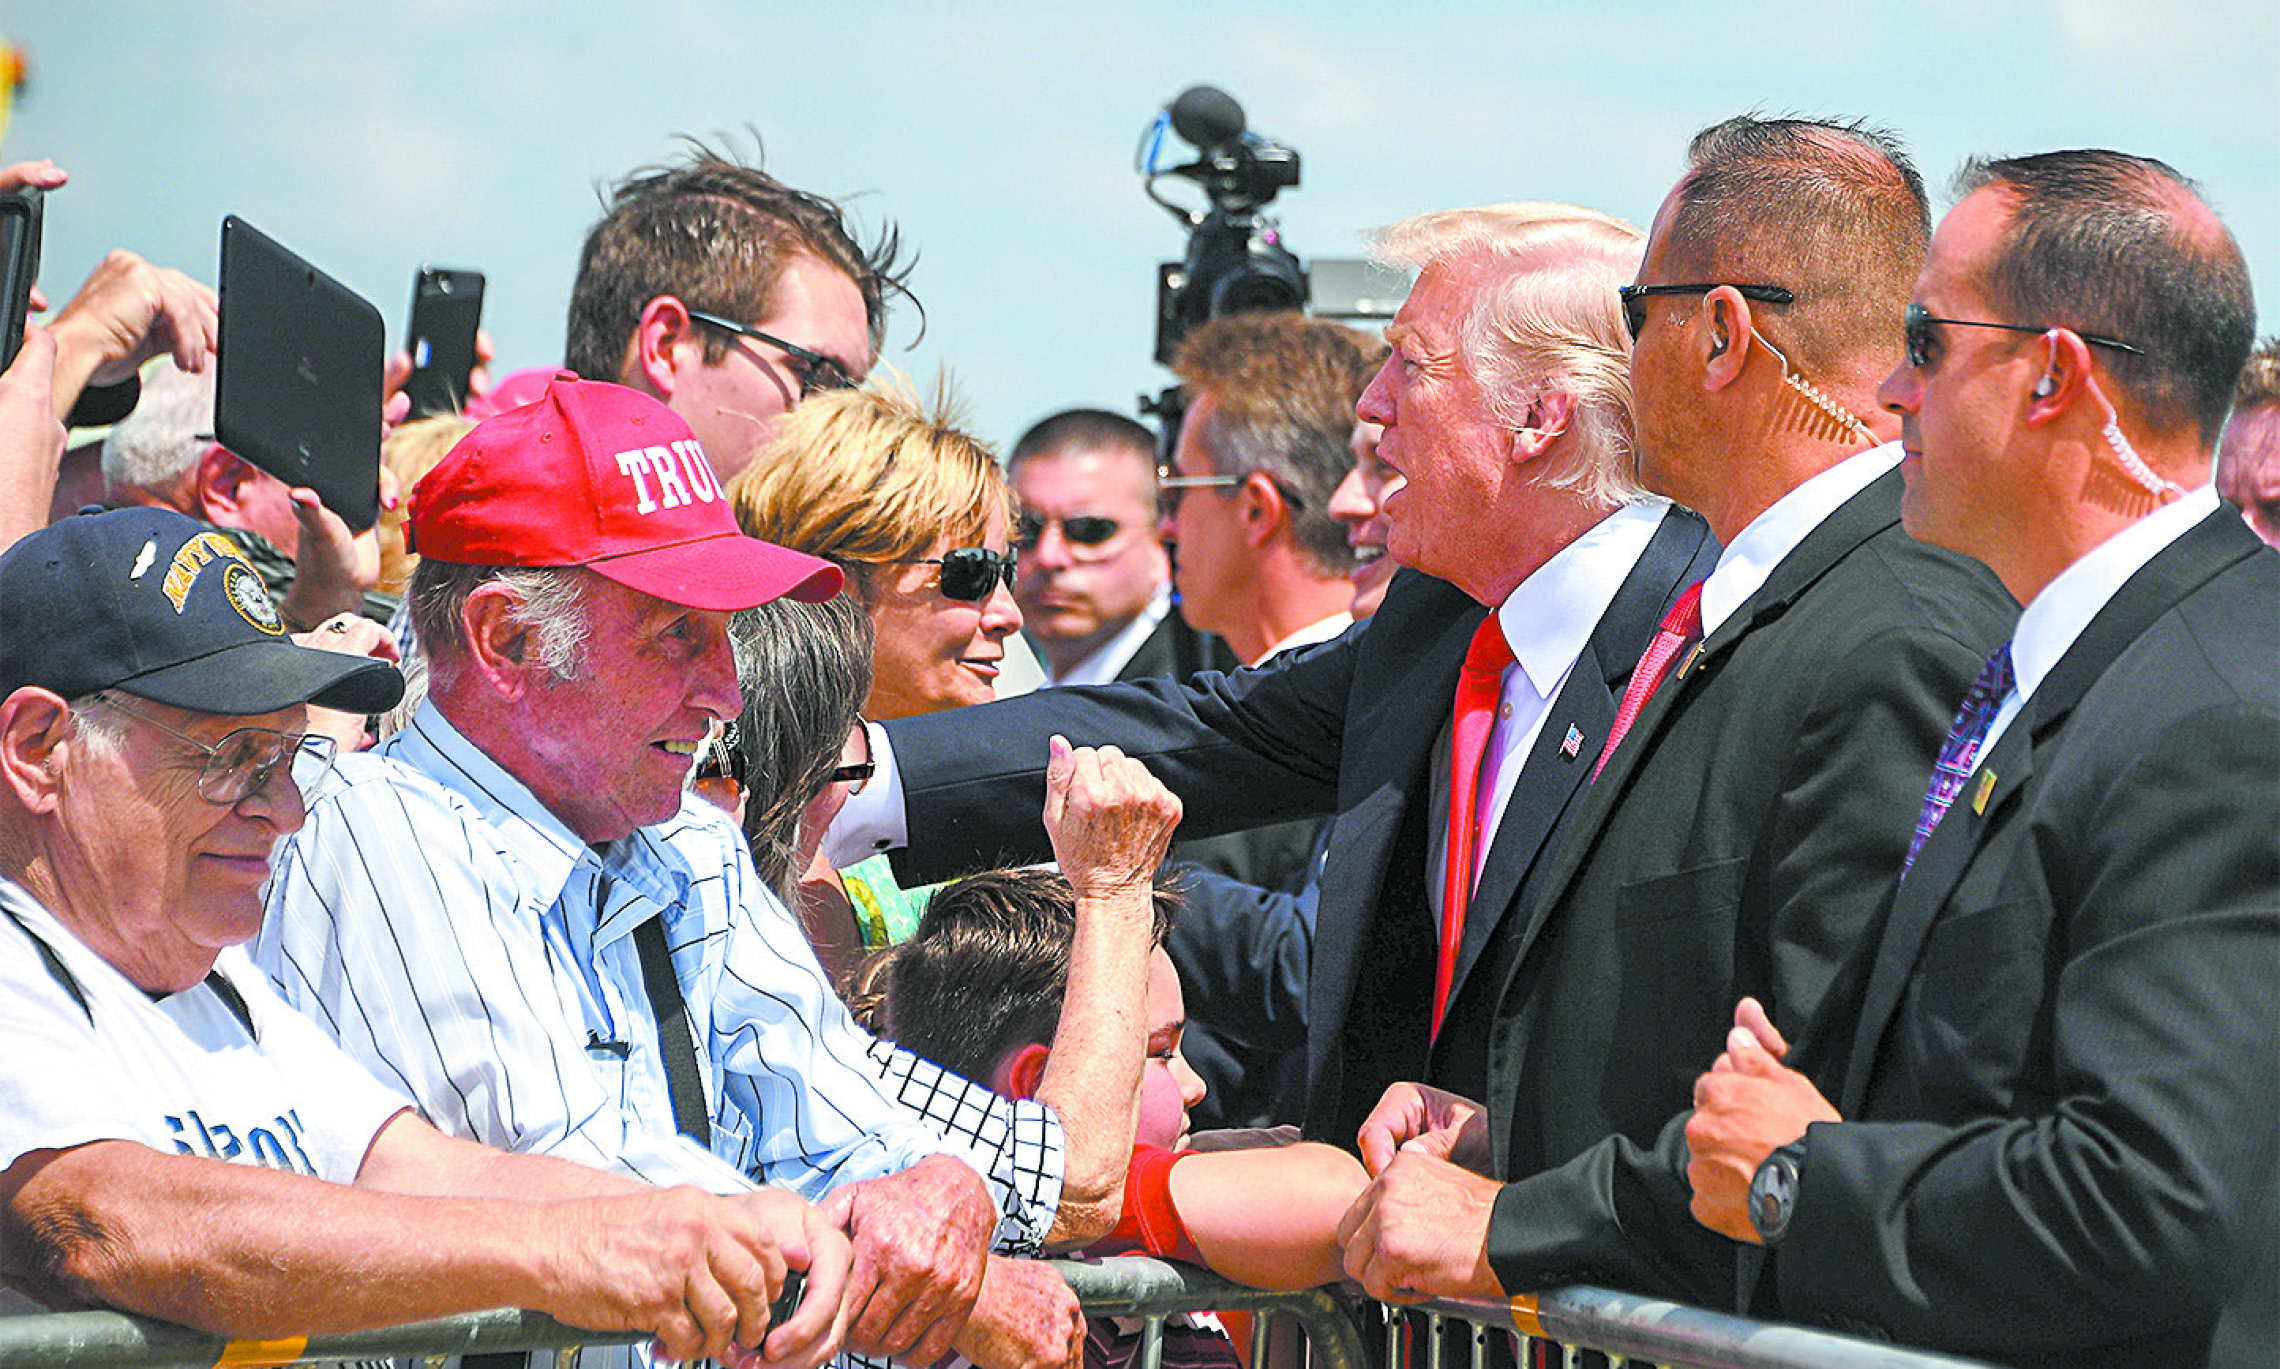 President Donald Trump greets supporters as he arrives in Springfield, Mo., on Aug. 30. (JIM WATSON/AFP/GETTY IMAGES)